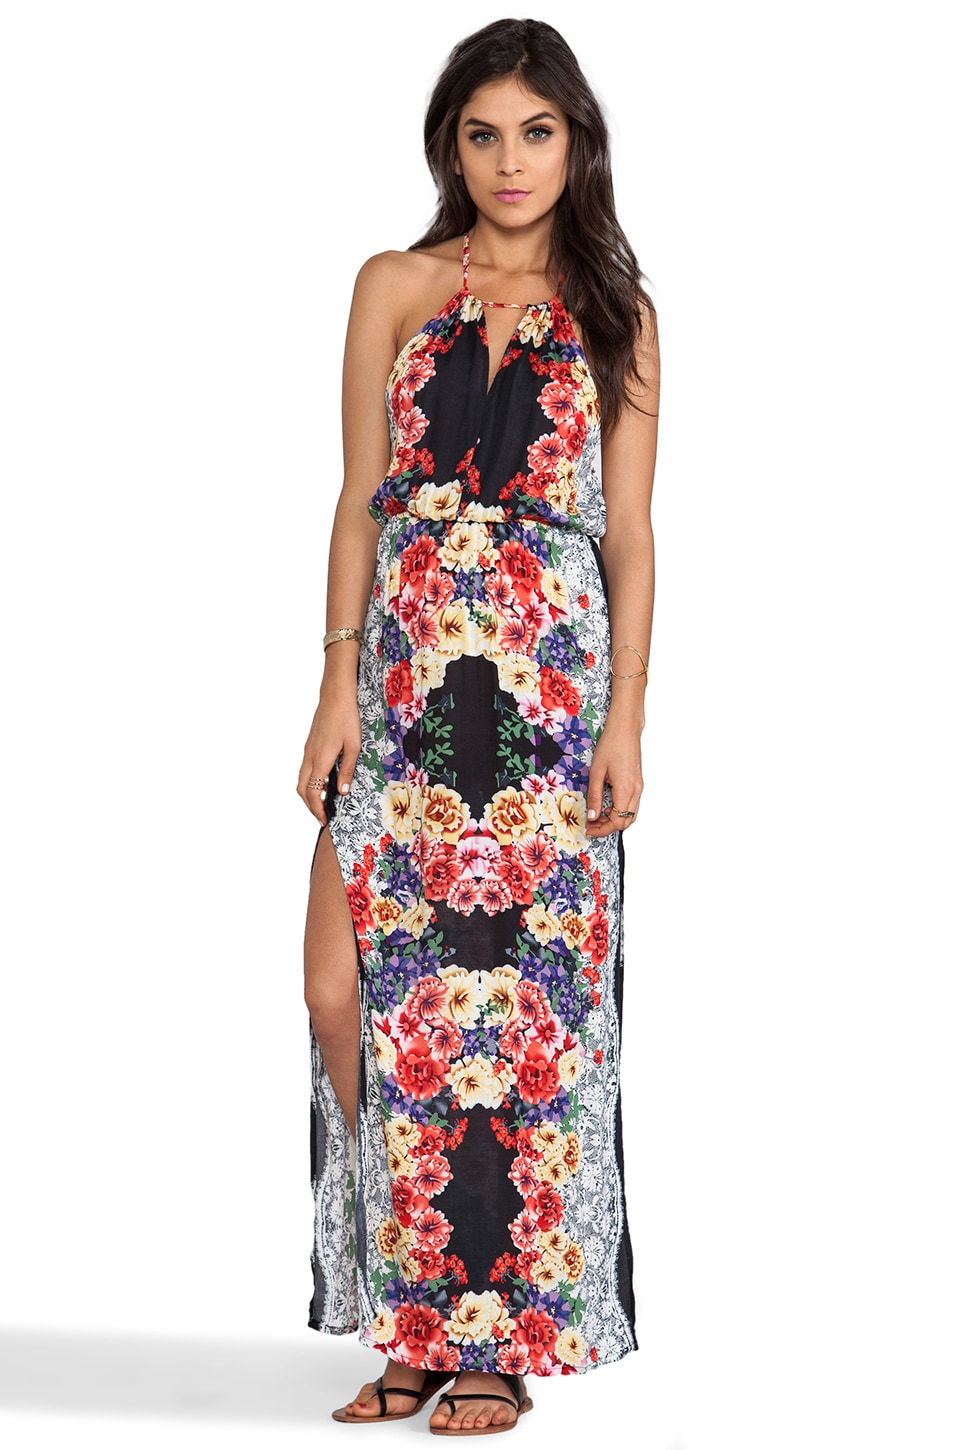 MINKPINK Lacey's Choice Maxis Dress in Multi